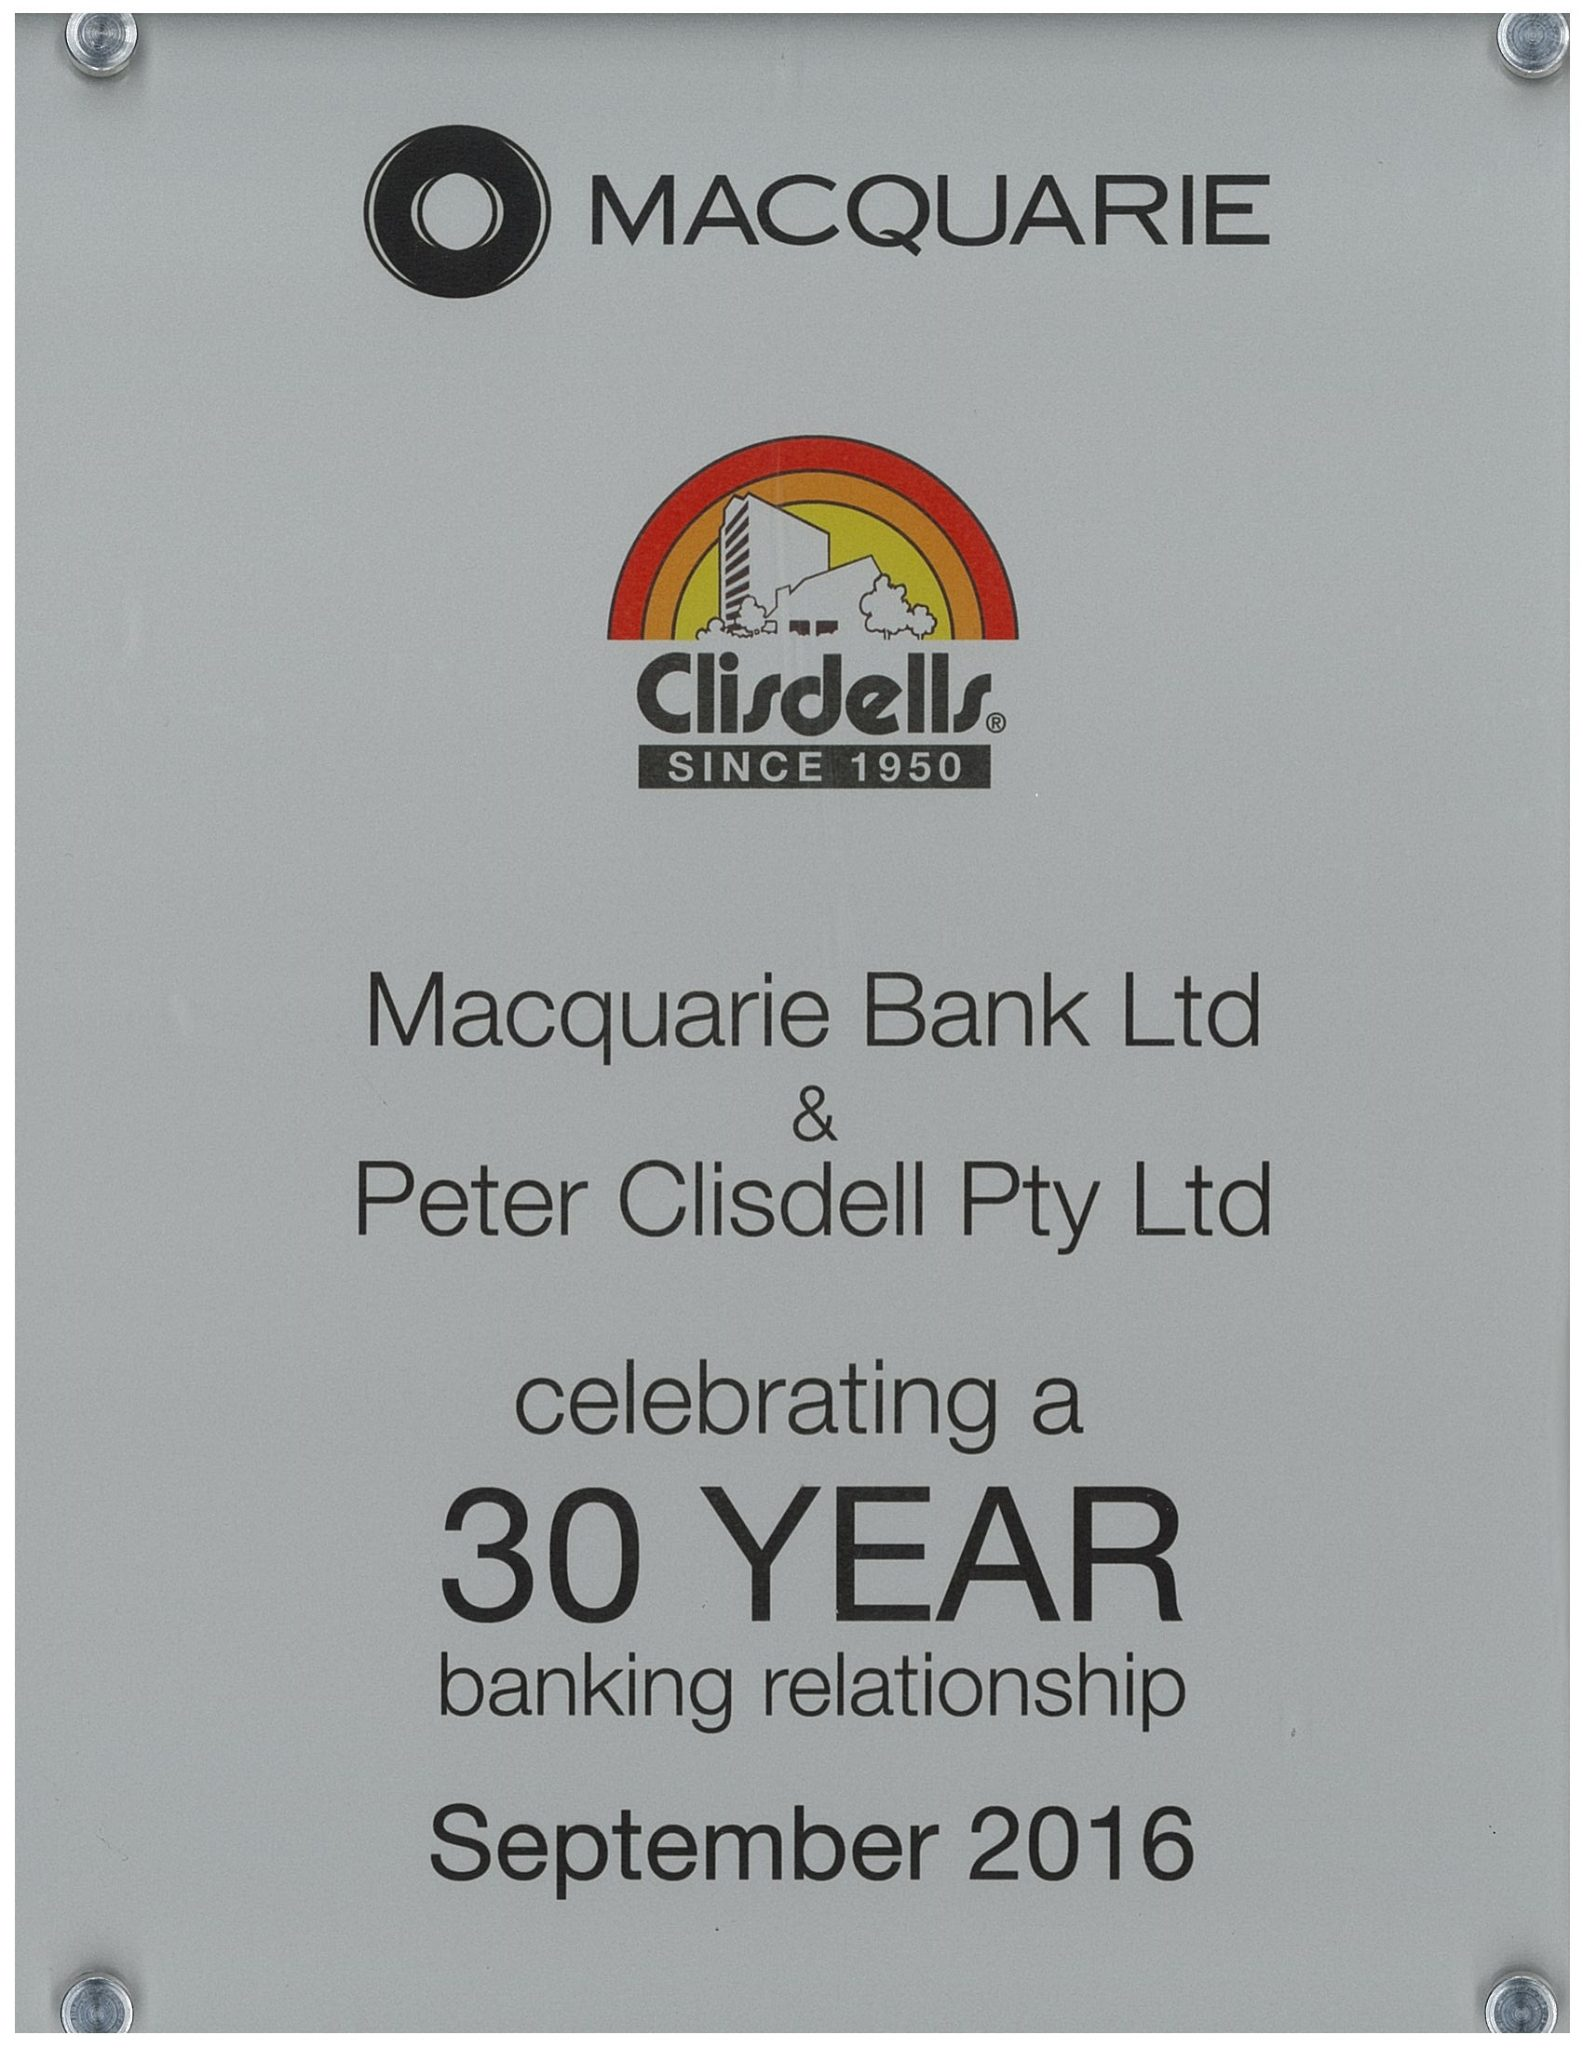 Clisdells & Macquarie Bank celebrating 30 years